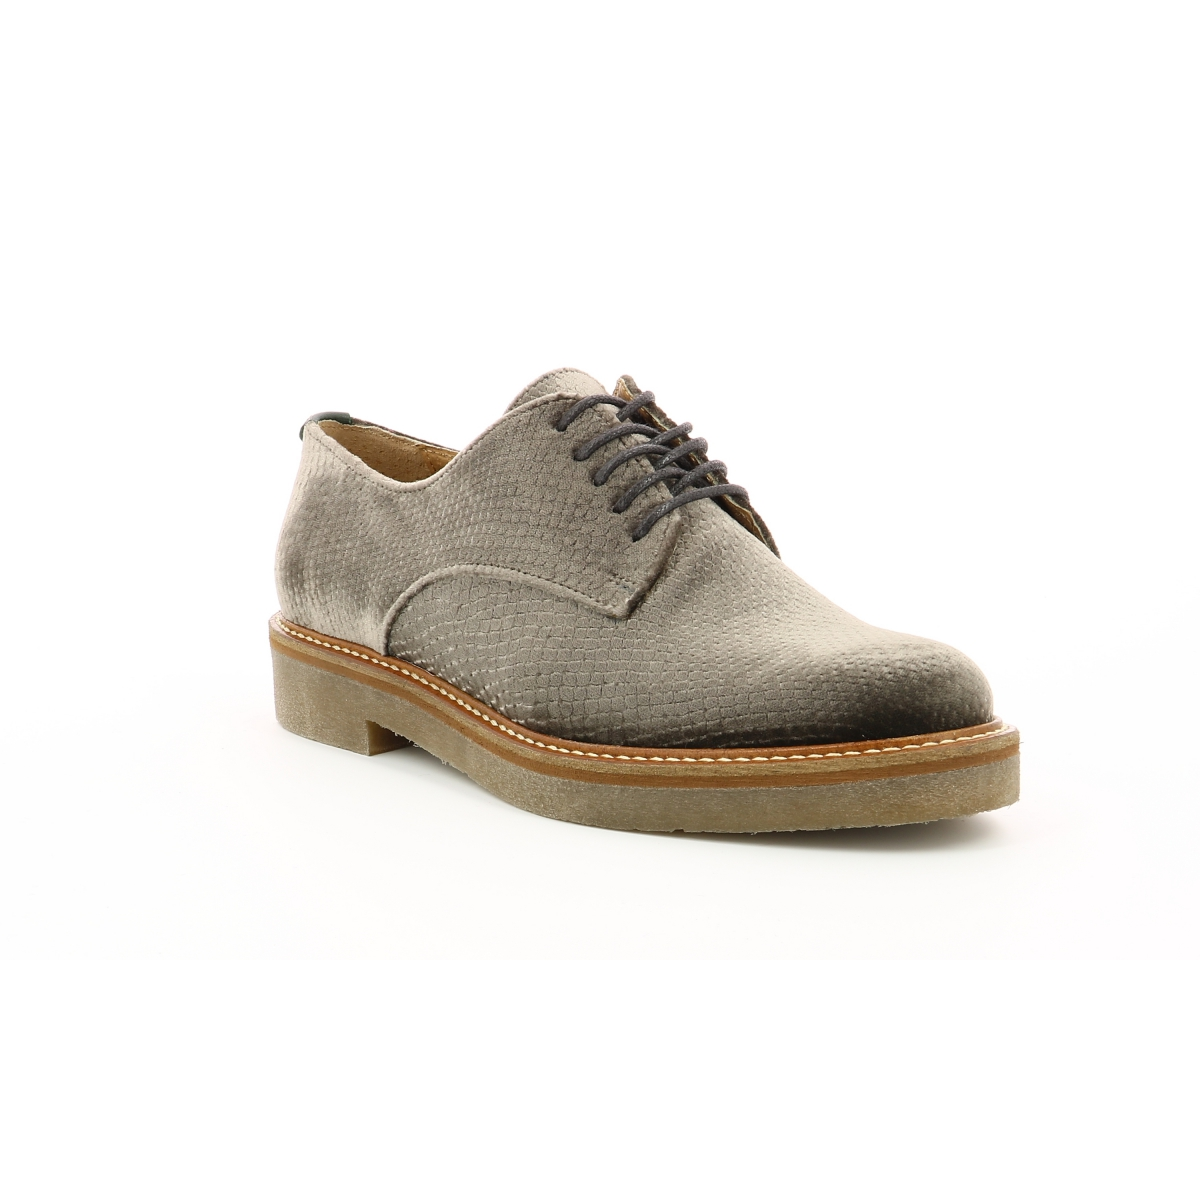 b403f2321f81 Chaussures Femme OXFORK ARGENT VELOURS - Kickers